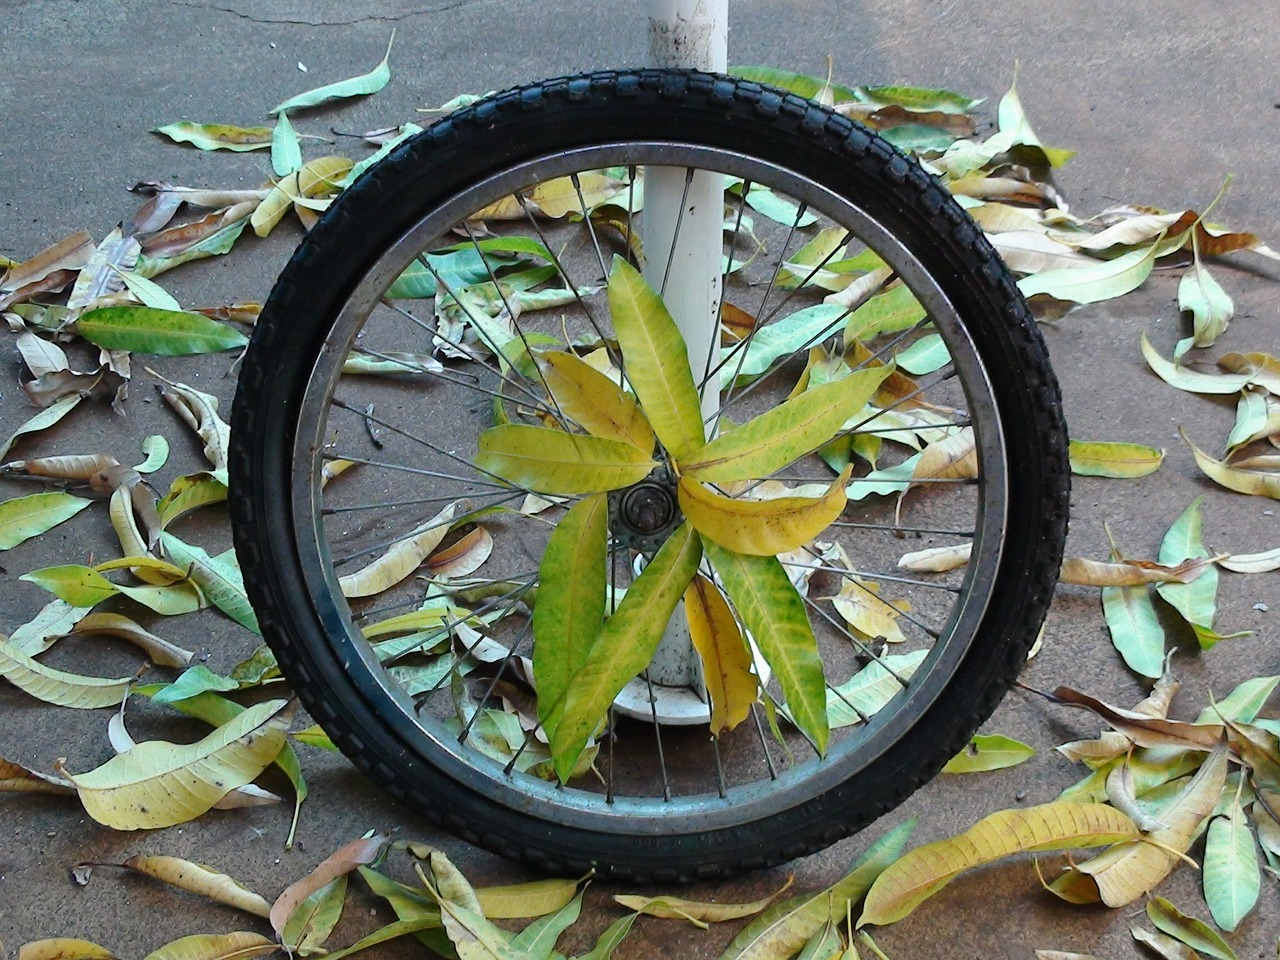 wheel,bike,stolen,tire,bike tire,leaves,rim,spokes,free pictures, free photos, free images, royalty free, free illustrations, public domain